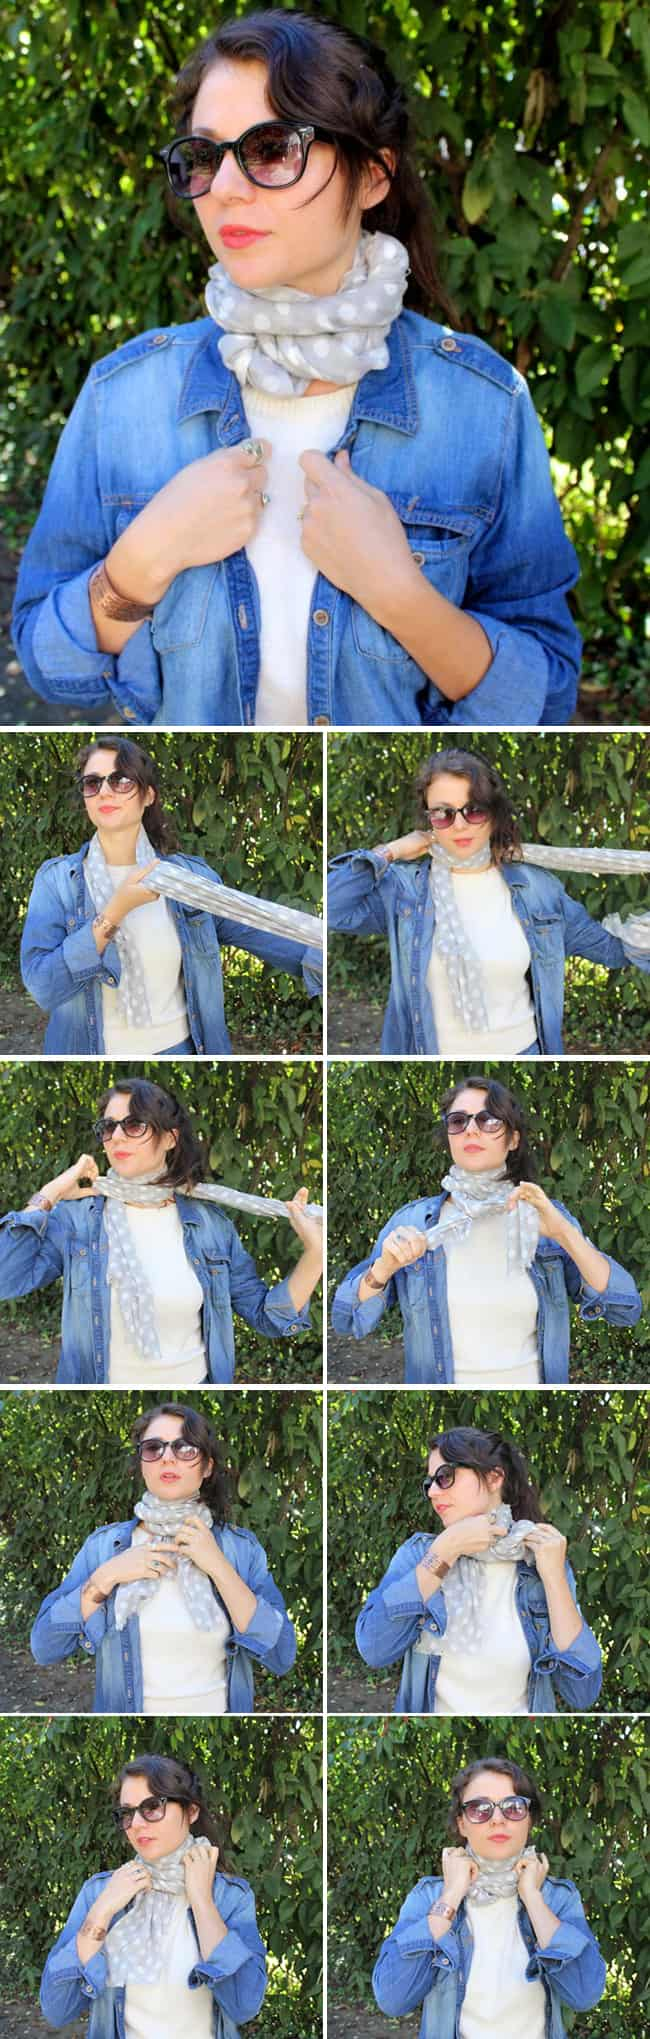 685767578000f 13 Super Stylish Ways to Tie a Scarf | Different Ways of Tying a Scarf